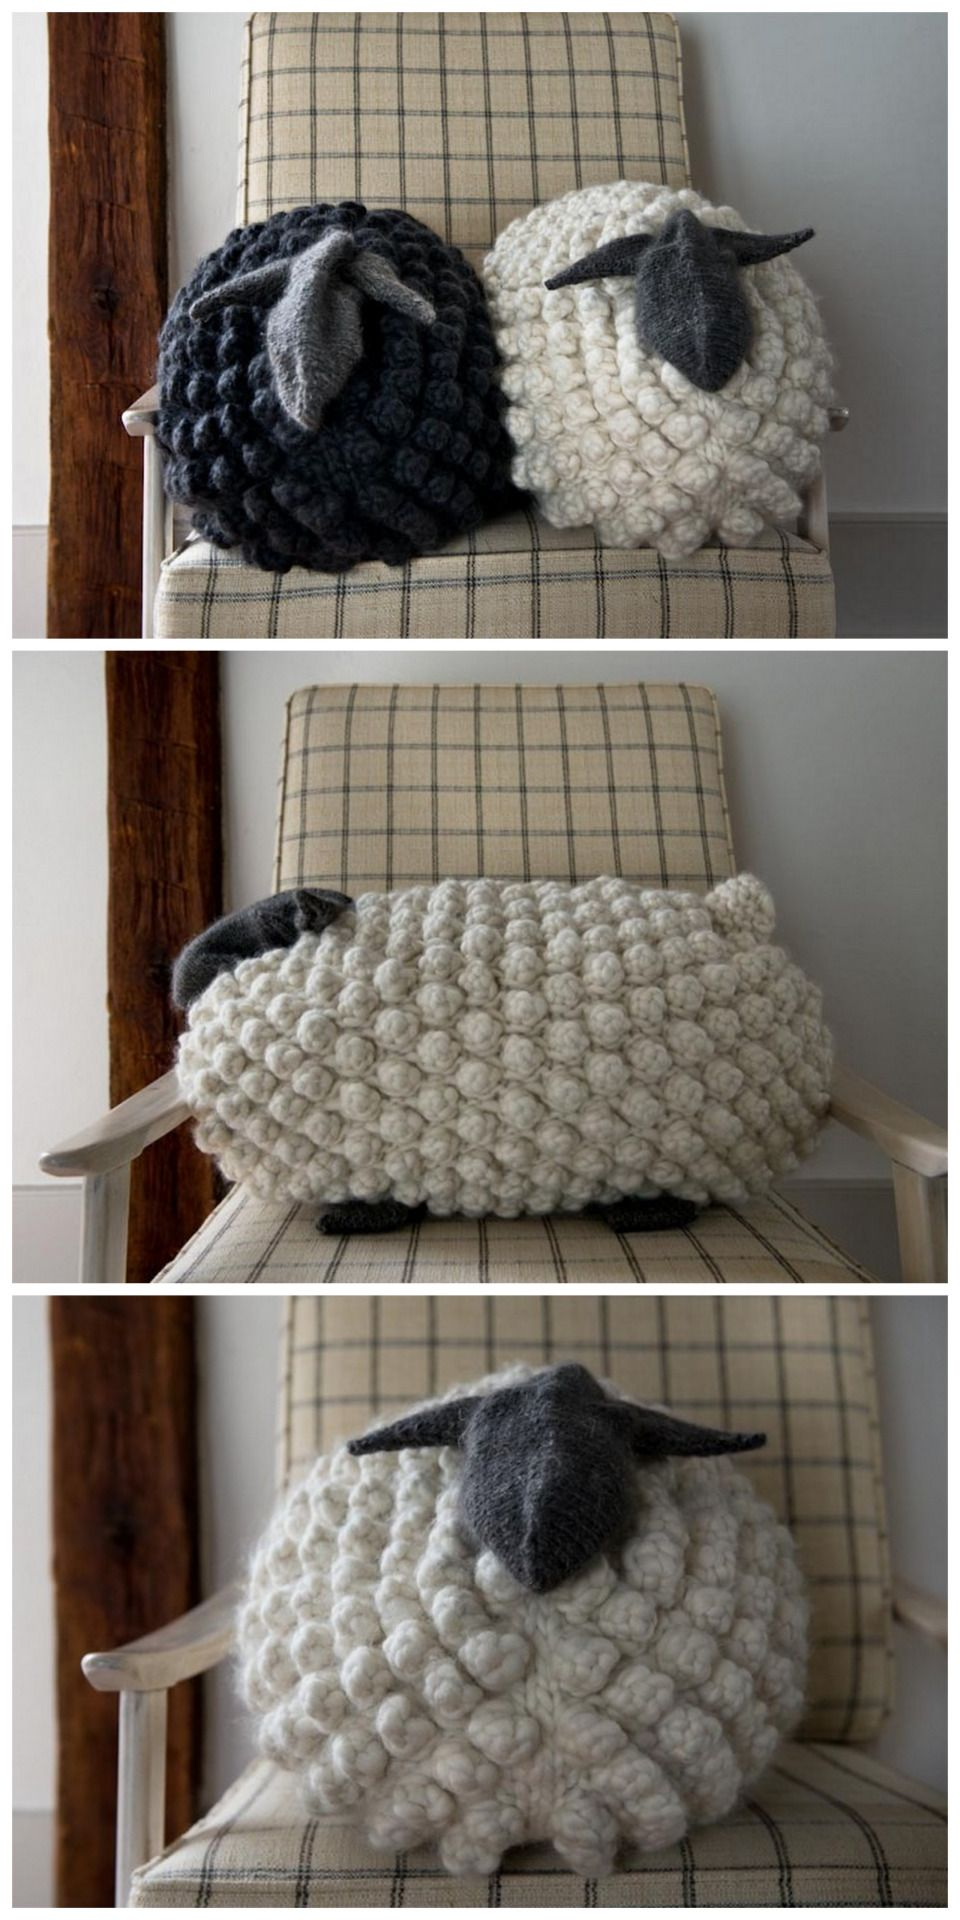 Diy giant knit bobble sheep pillow free pattern pinteres crochet diy giant knit bobble sheep pillow free pattern more bankloansurffo Gallery